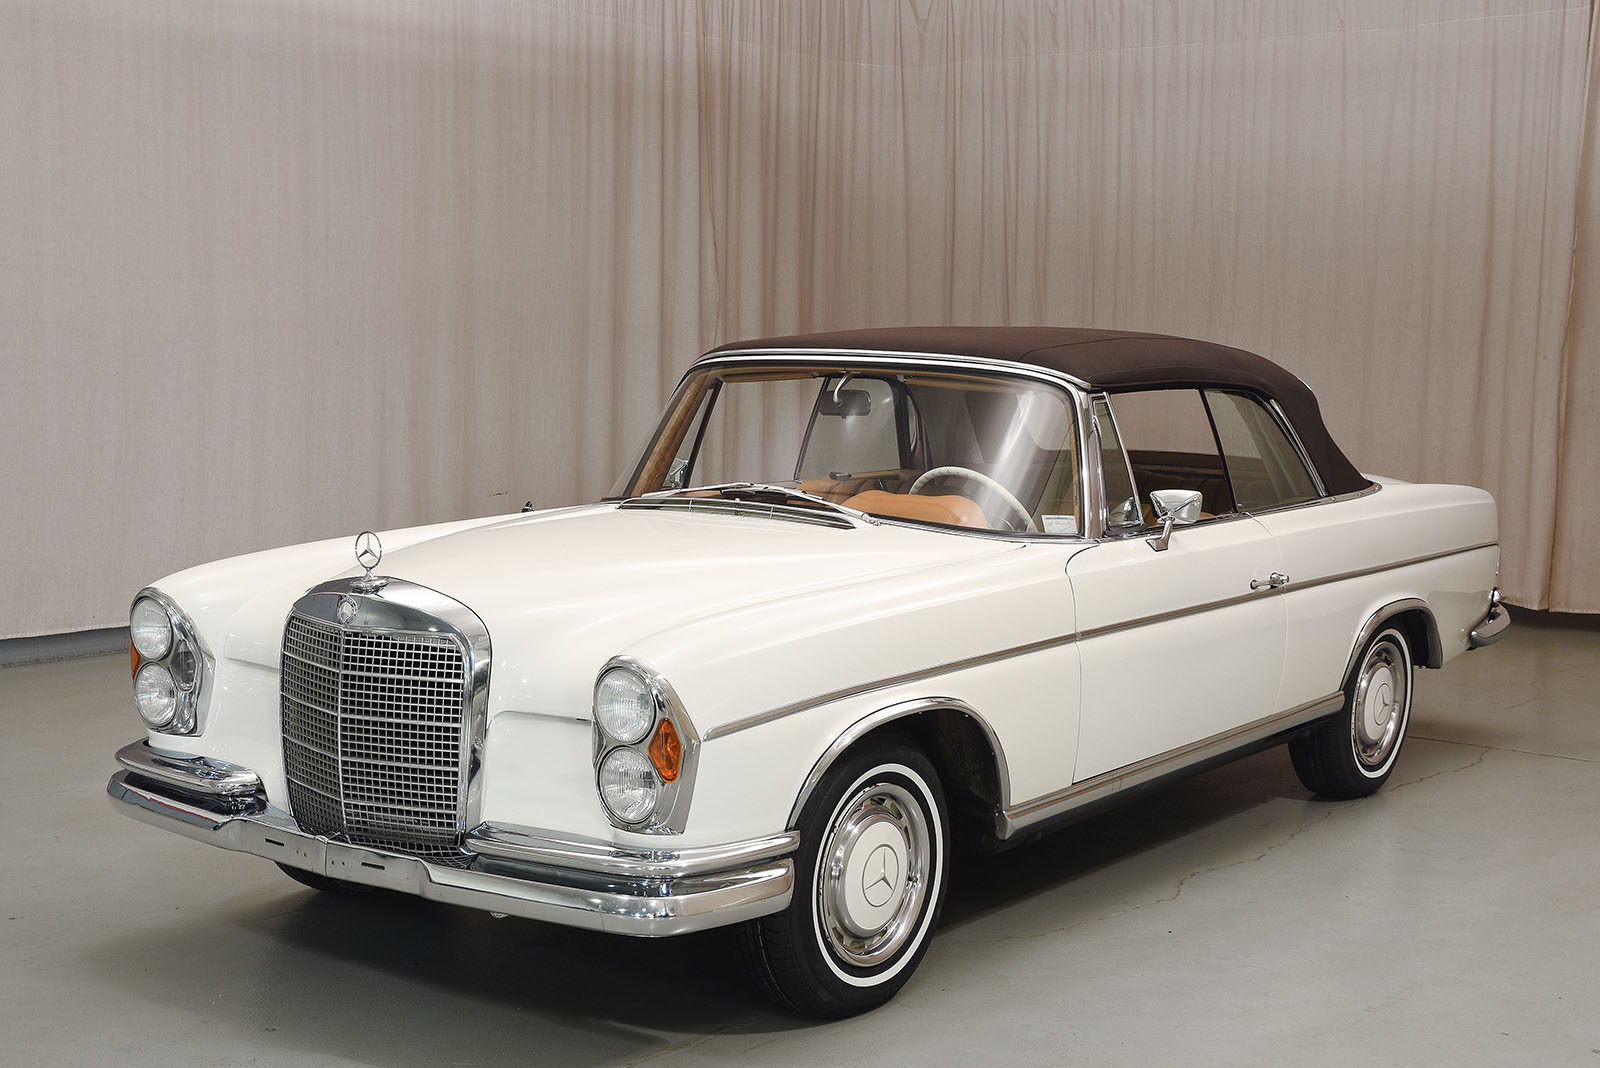 1968 mercedes benz 280se convertible hyman ltd classic cars for 1968 mercedes benz 280 se convertible